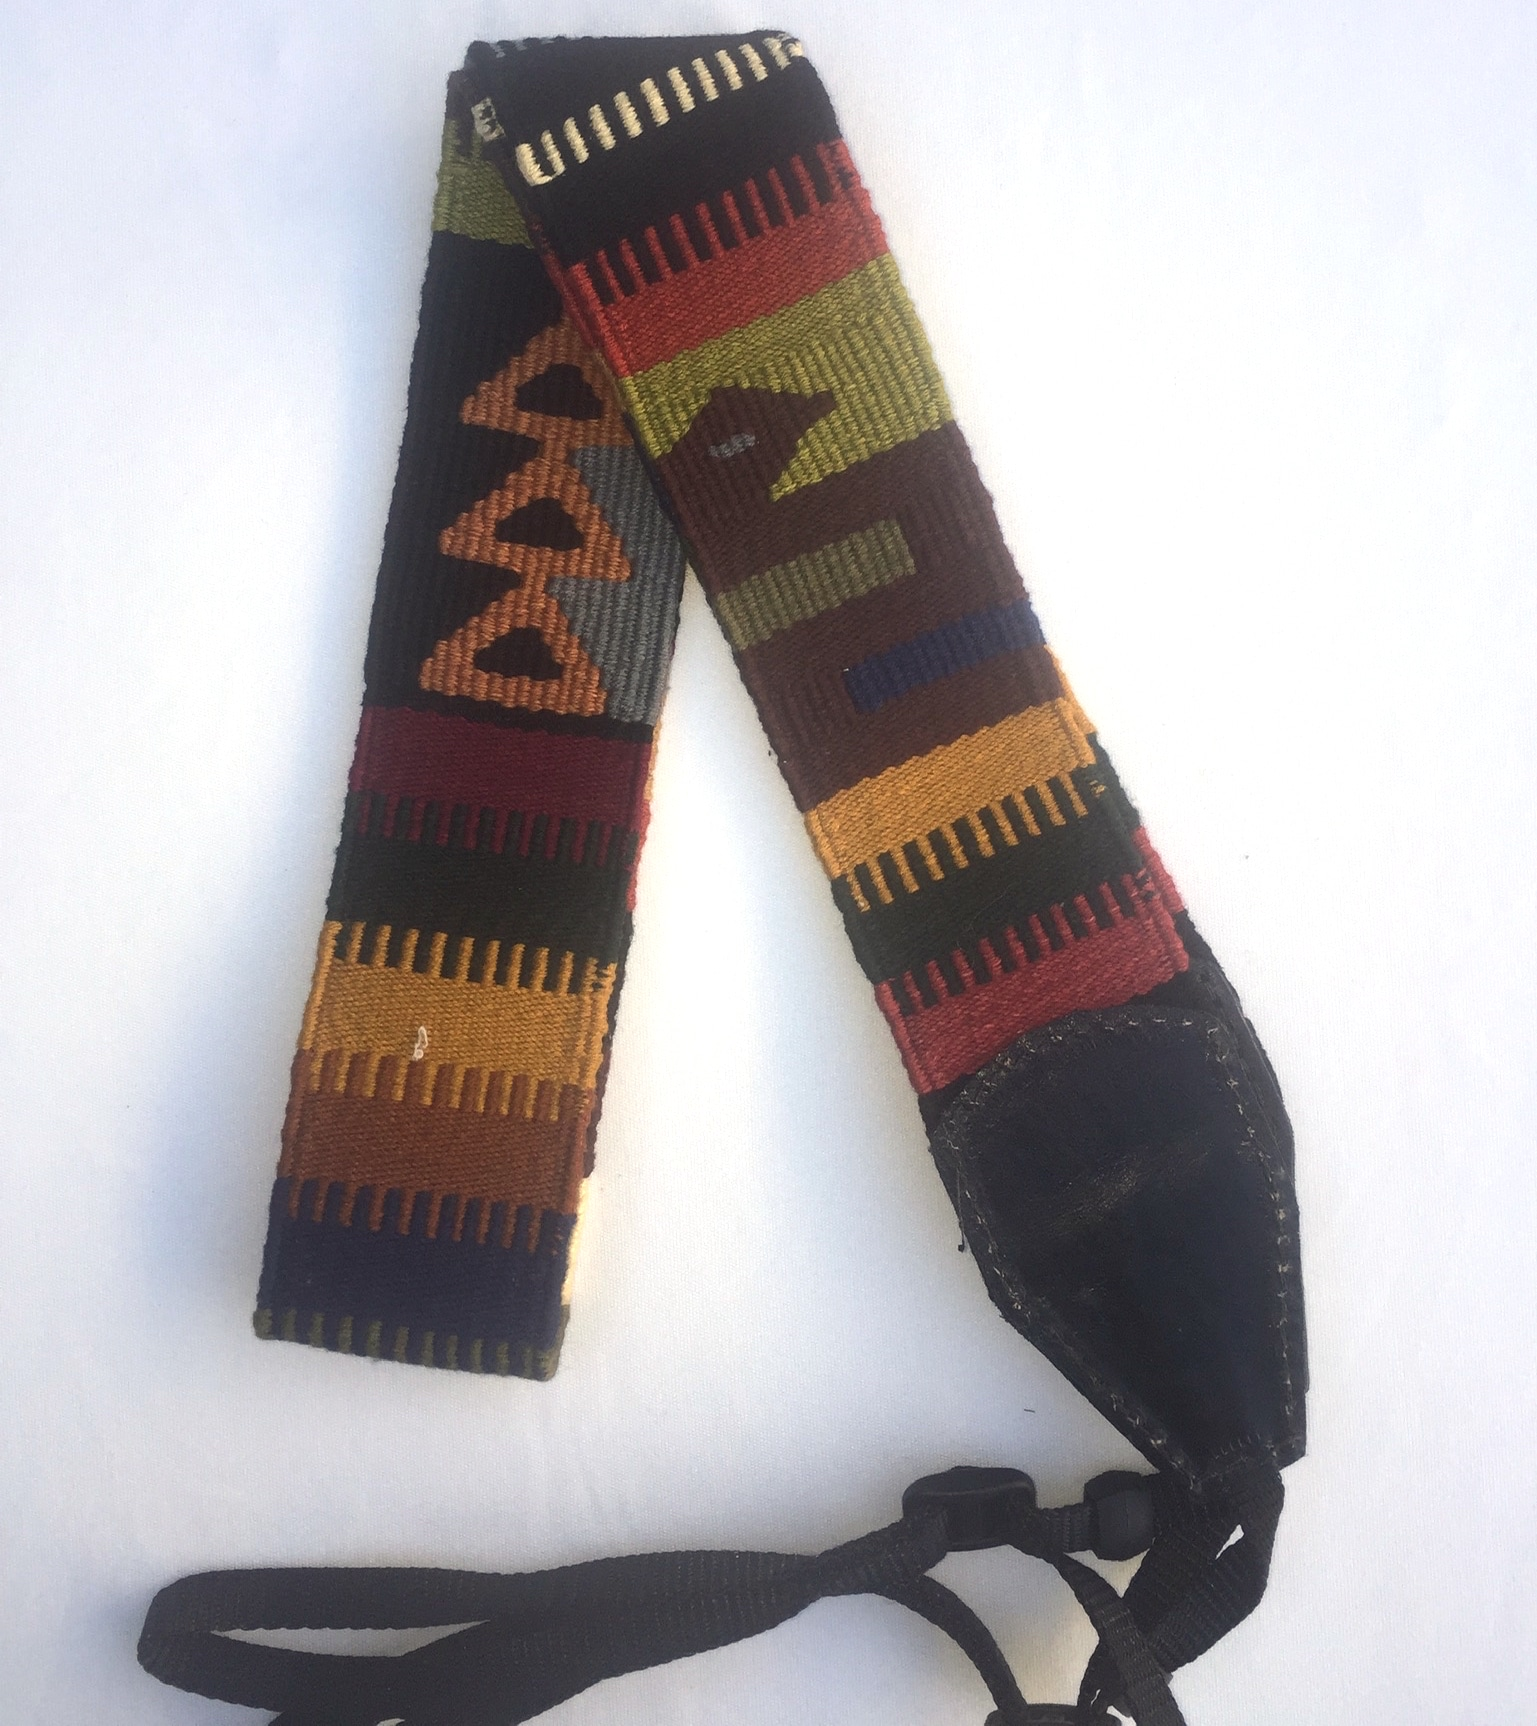 Handwoven Cotton and Leather Camera Strap - Earth Tones with Serpents and Triangles